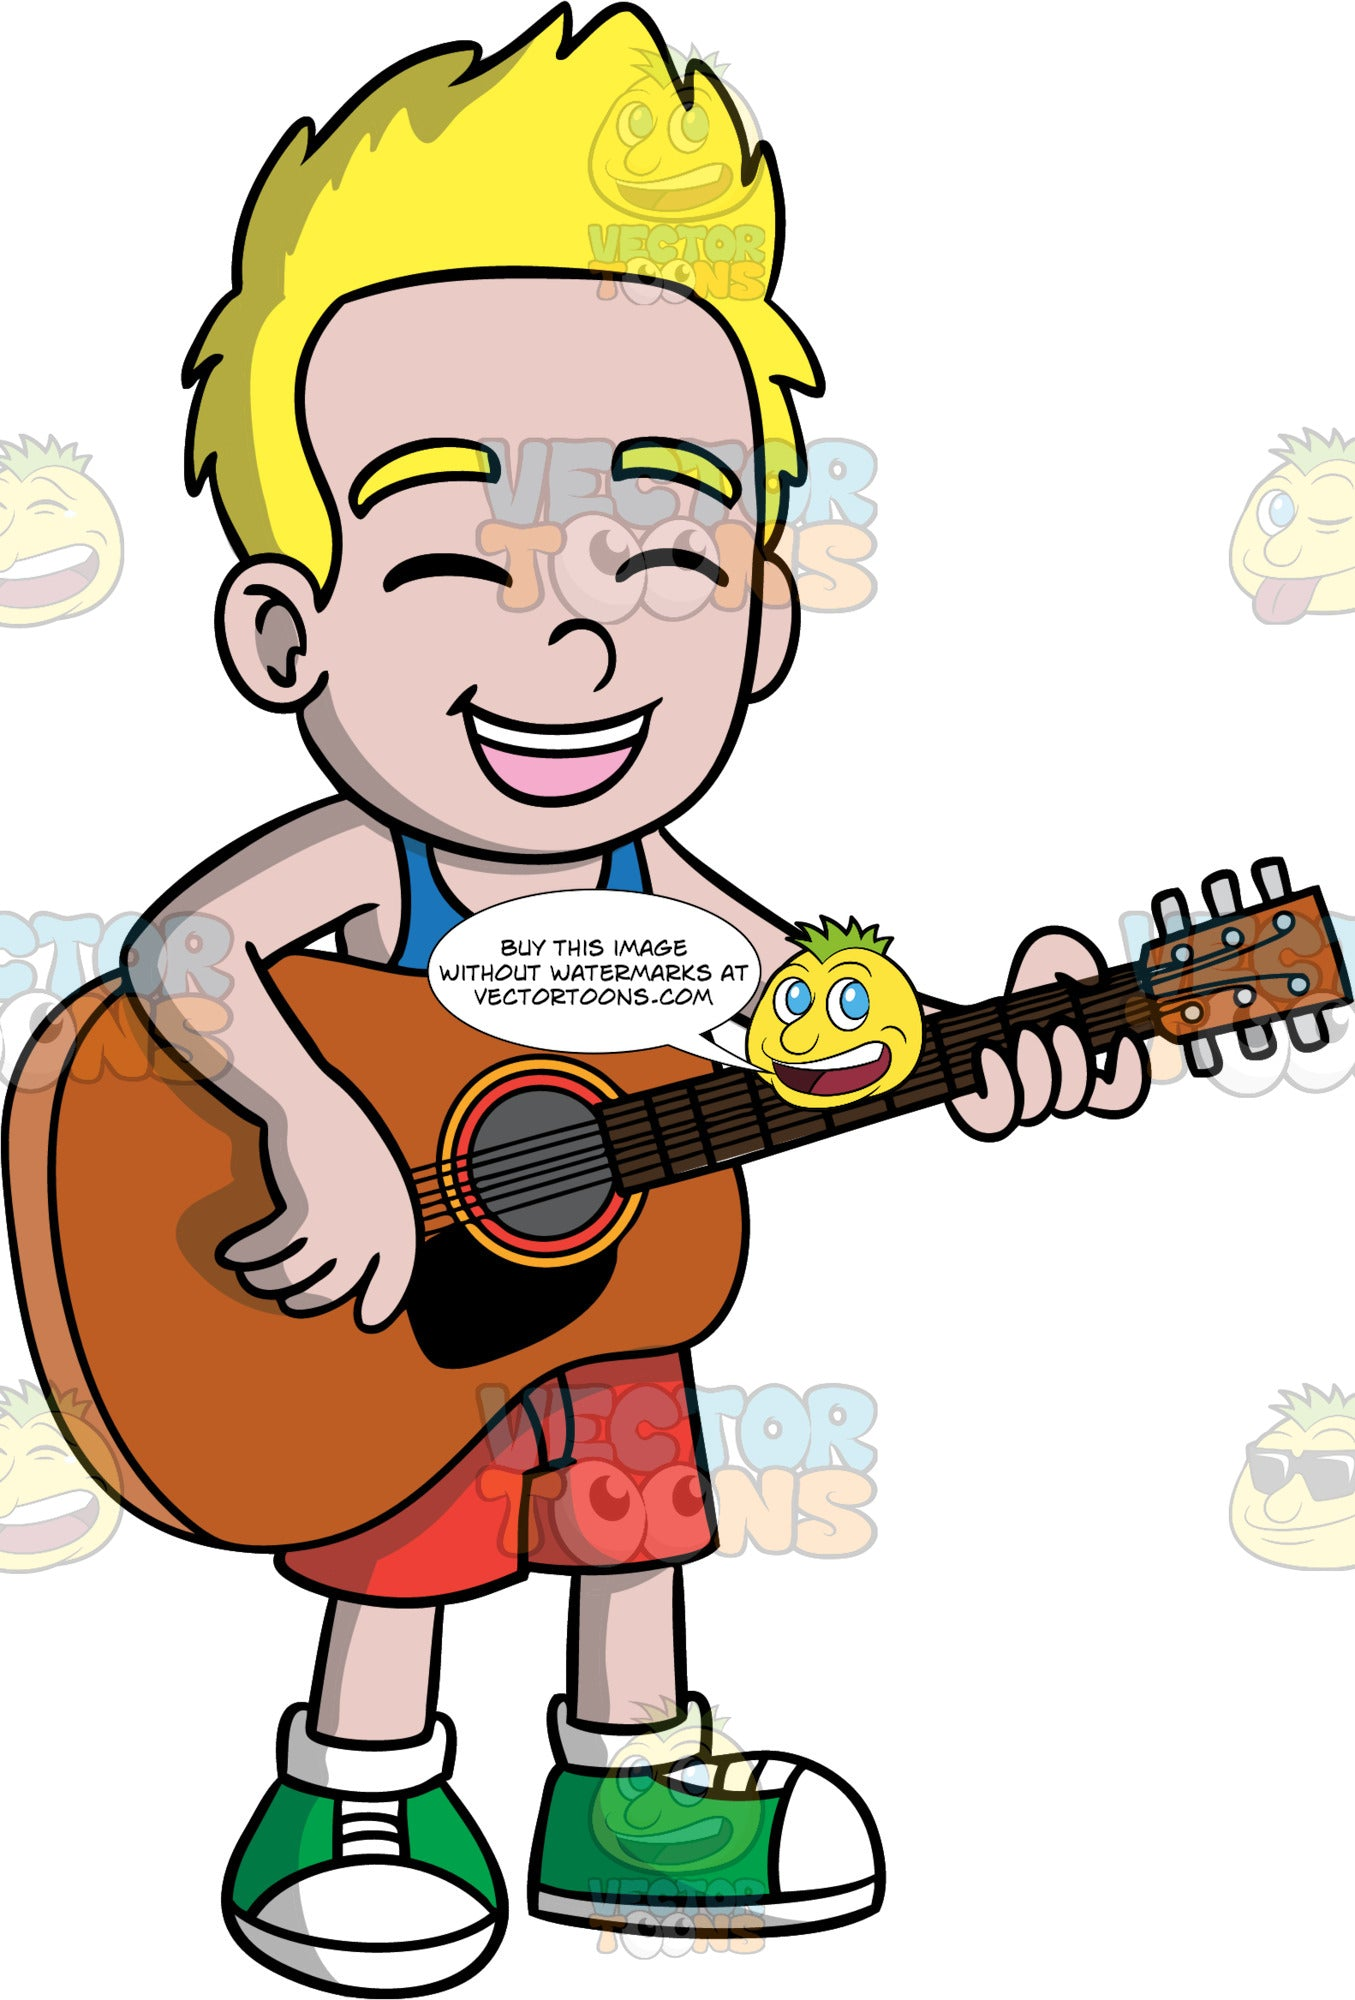 A Boy Singing And Playing Guitar. A boy with blonde hair, wearing red shorts, a blue tank top, and green and white sneakers, closes his eyes as he sings and plays a song on his acoustic guitar